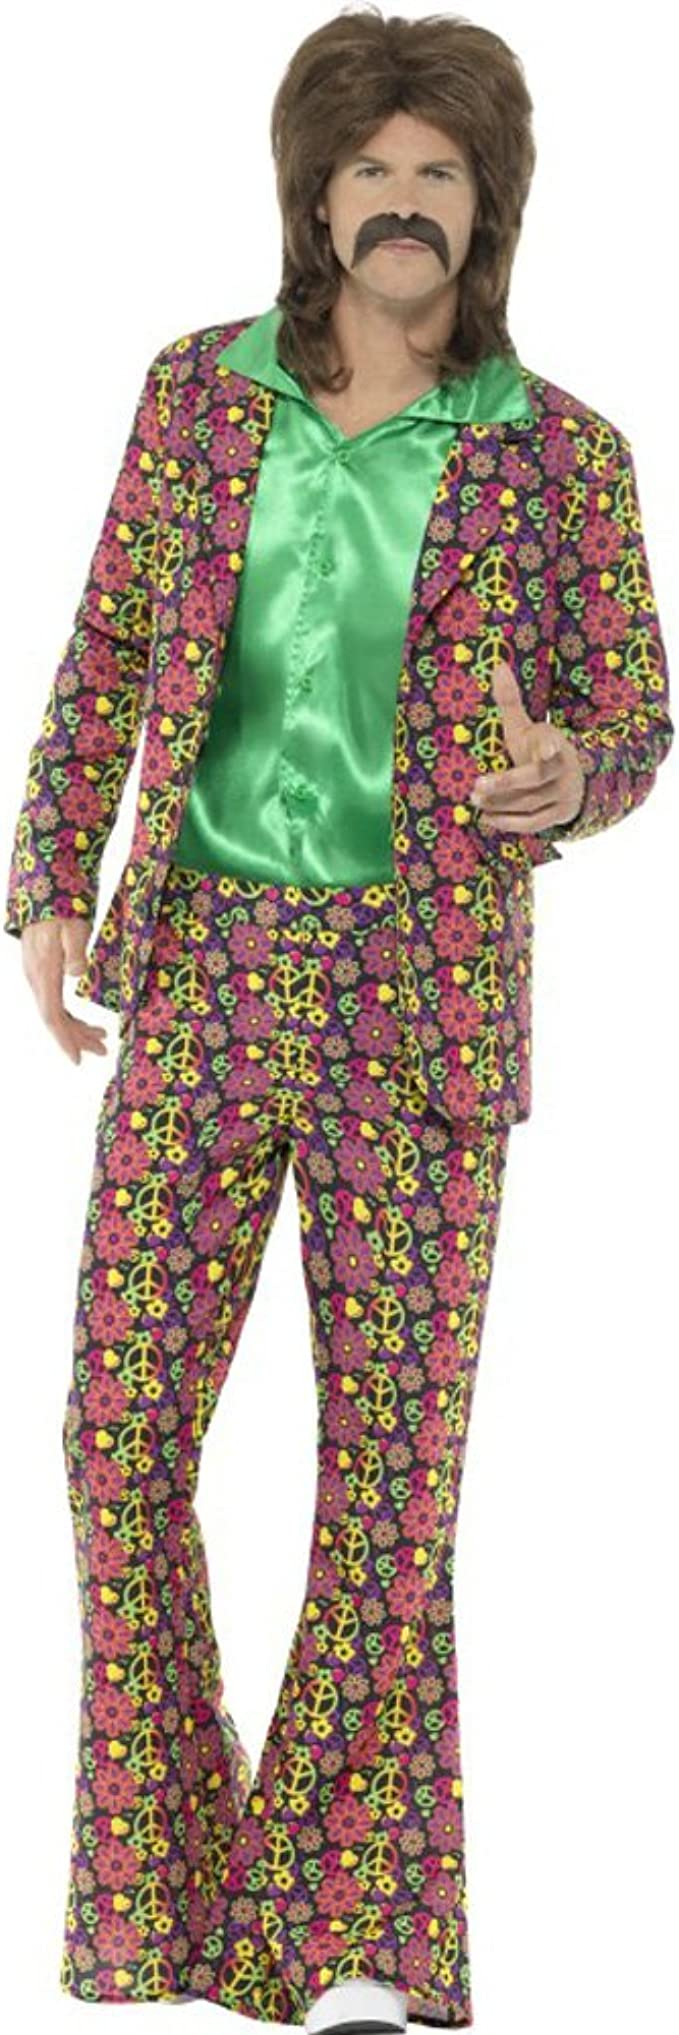 60s -70s  Men's Costumes : Hippie, Disco, Beatles Smiffys 60s Psychedelic CND Suit $39.48 AT vintagedancer.com